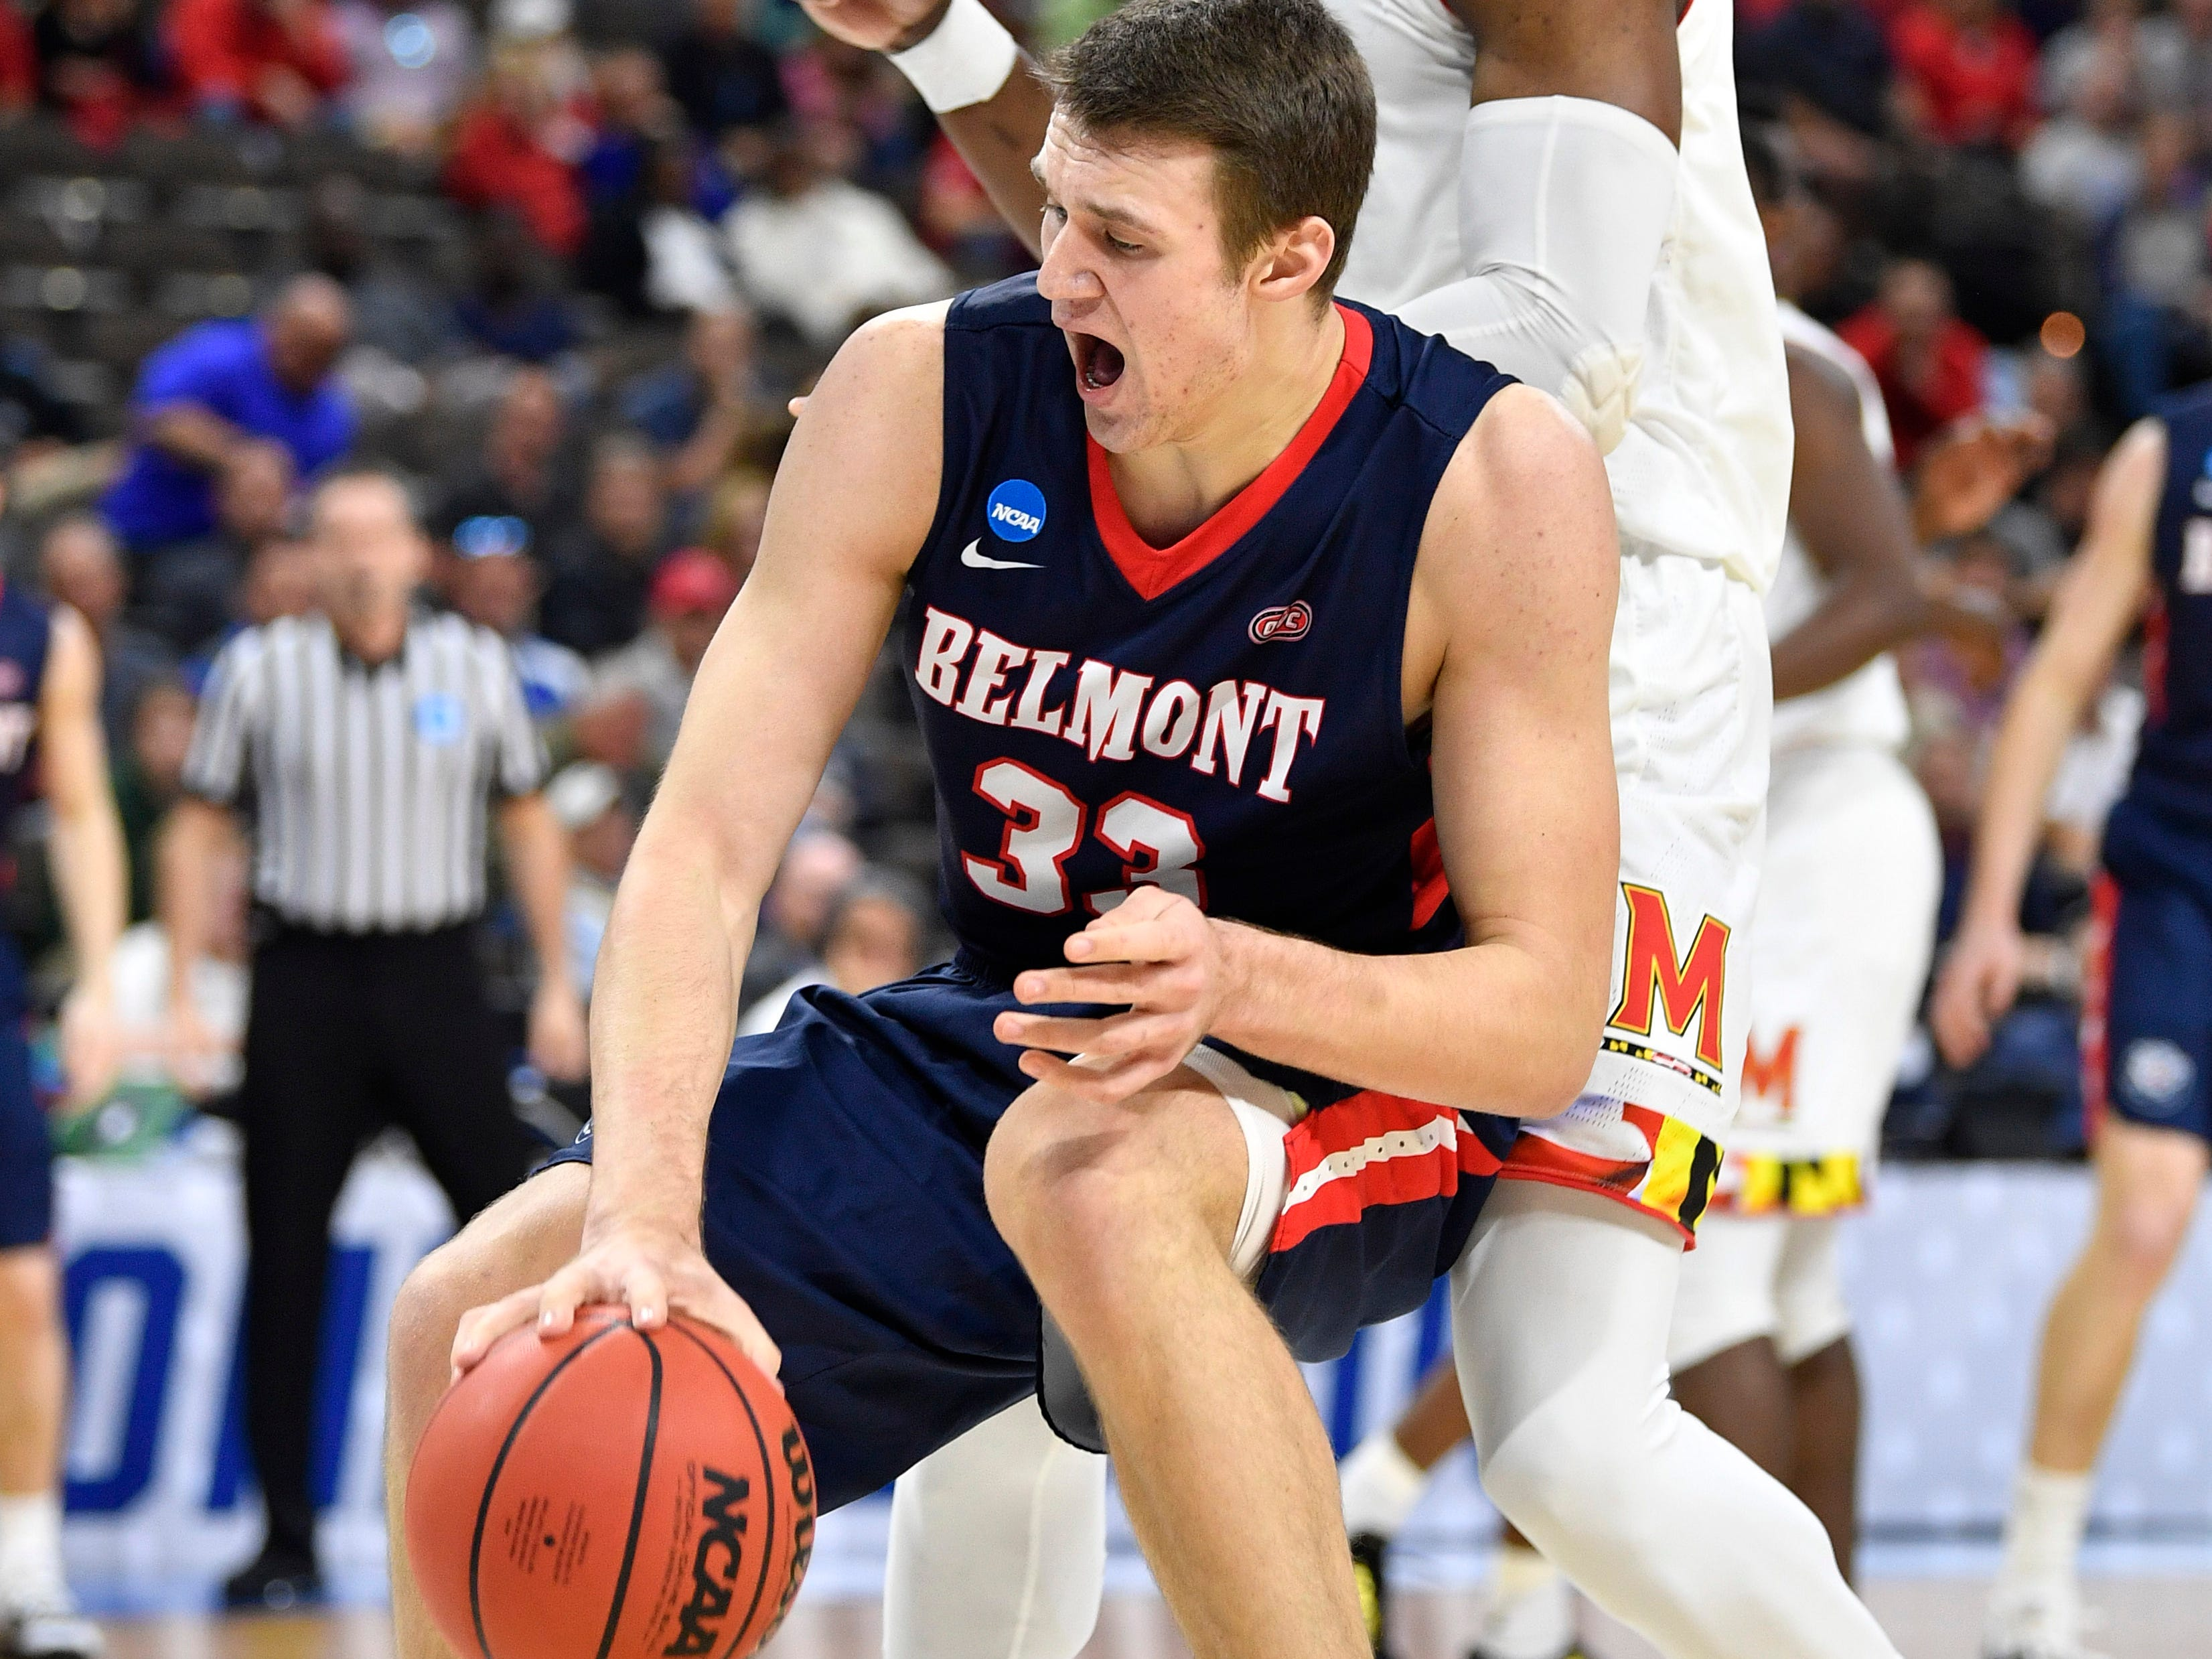 Belmont center Nick Muszynski (33) moves the ball defended by Maryland forward Bruno Fernando (23) during the first half of the first-round NCAA college basketball tournament game at VyStar Veterans Memorial Arena in Jacksonville, Fla., Thursday, March 21, 2019.